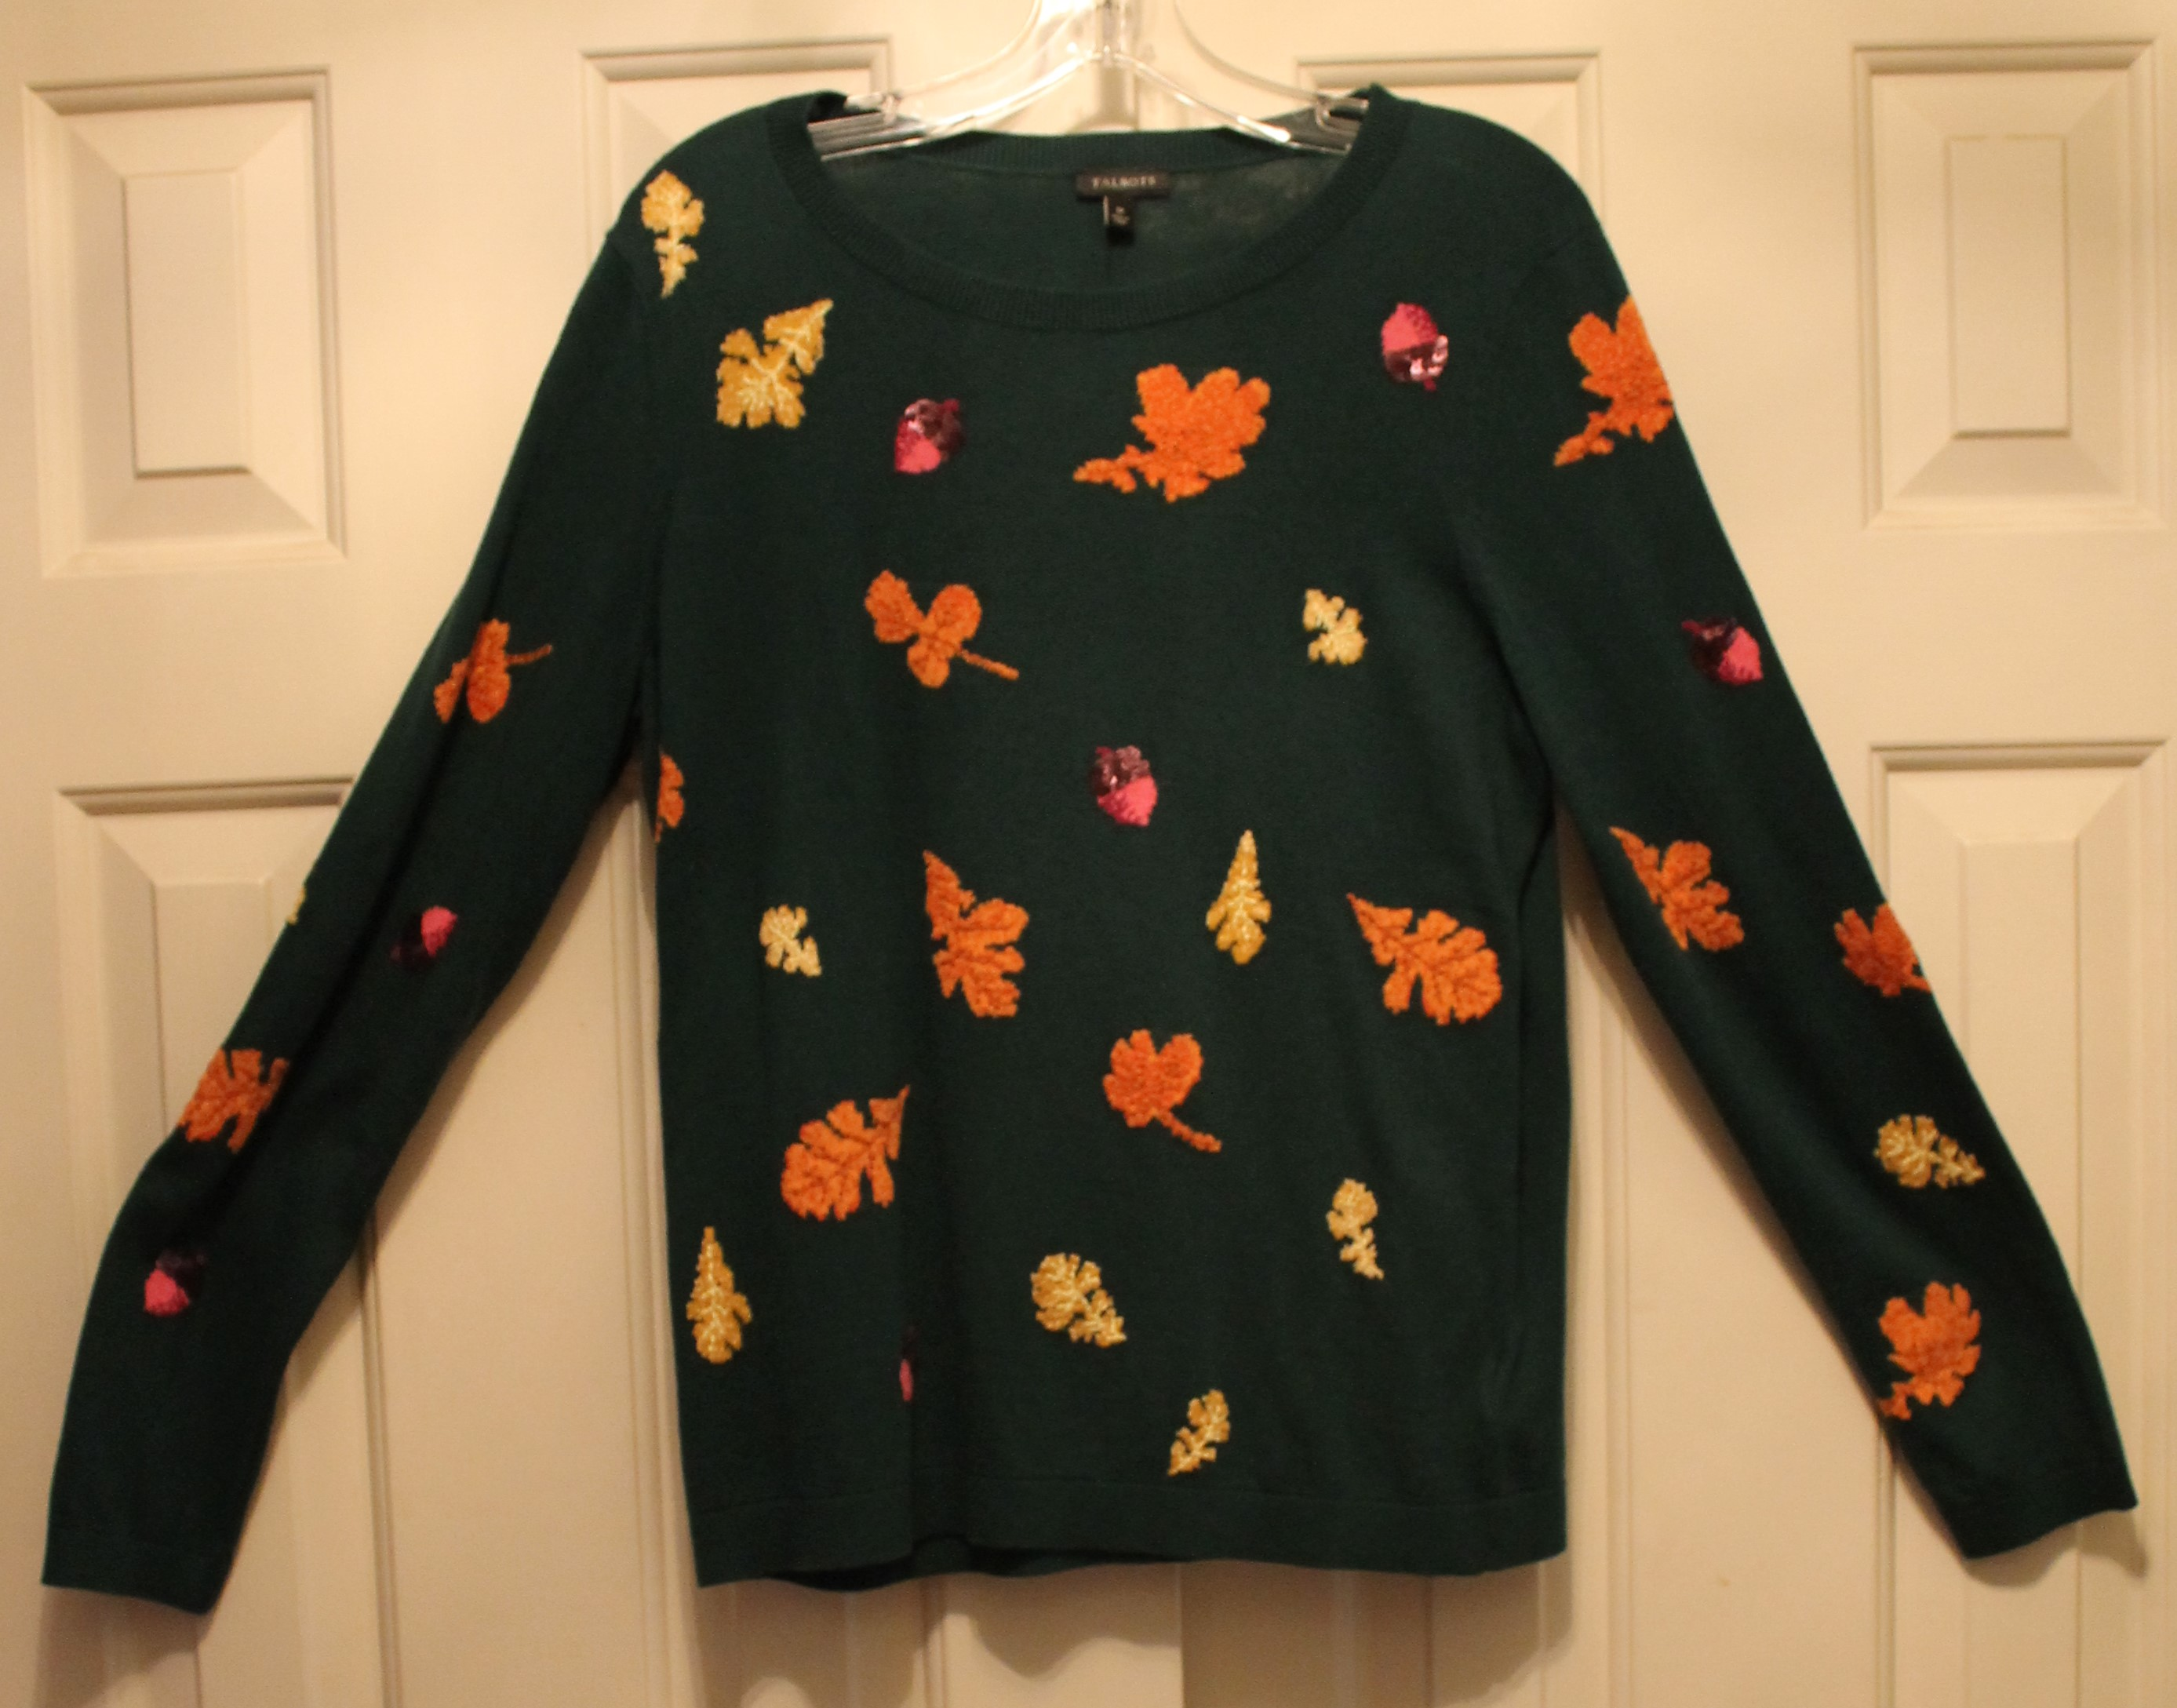 Talbots-Size-M-Green-Cotton-Blend-AUTUMN-Long-Sleeve-Top_64049B.jpg